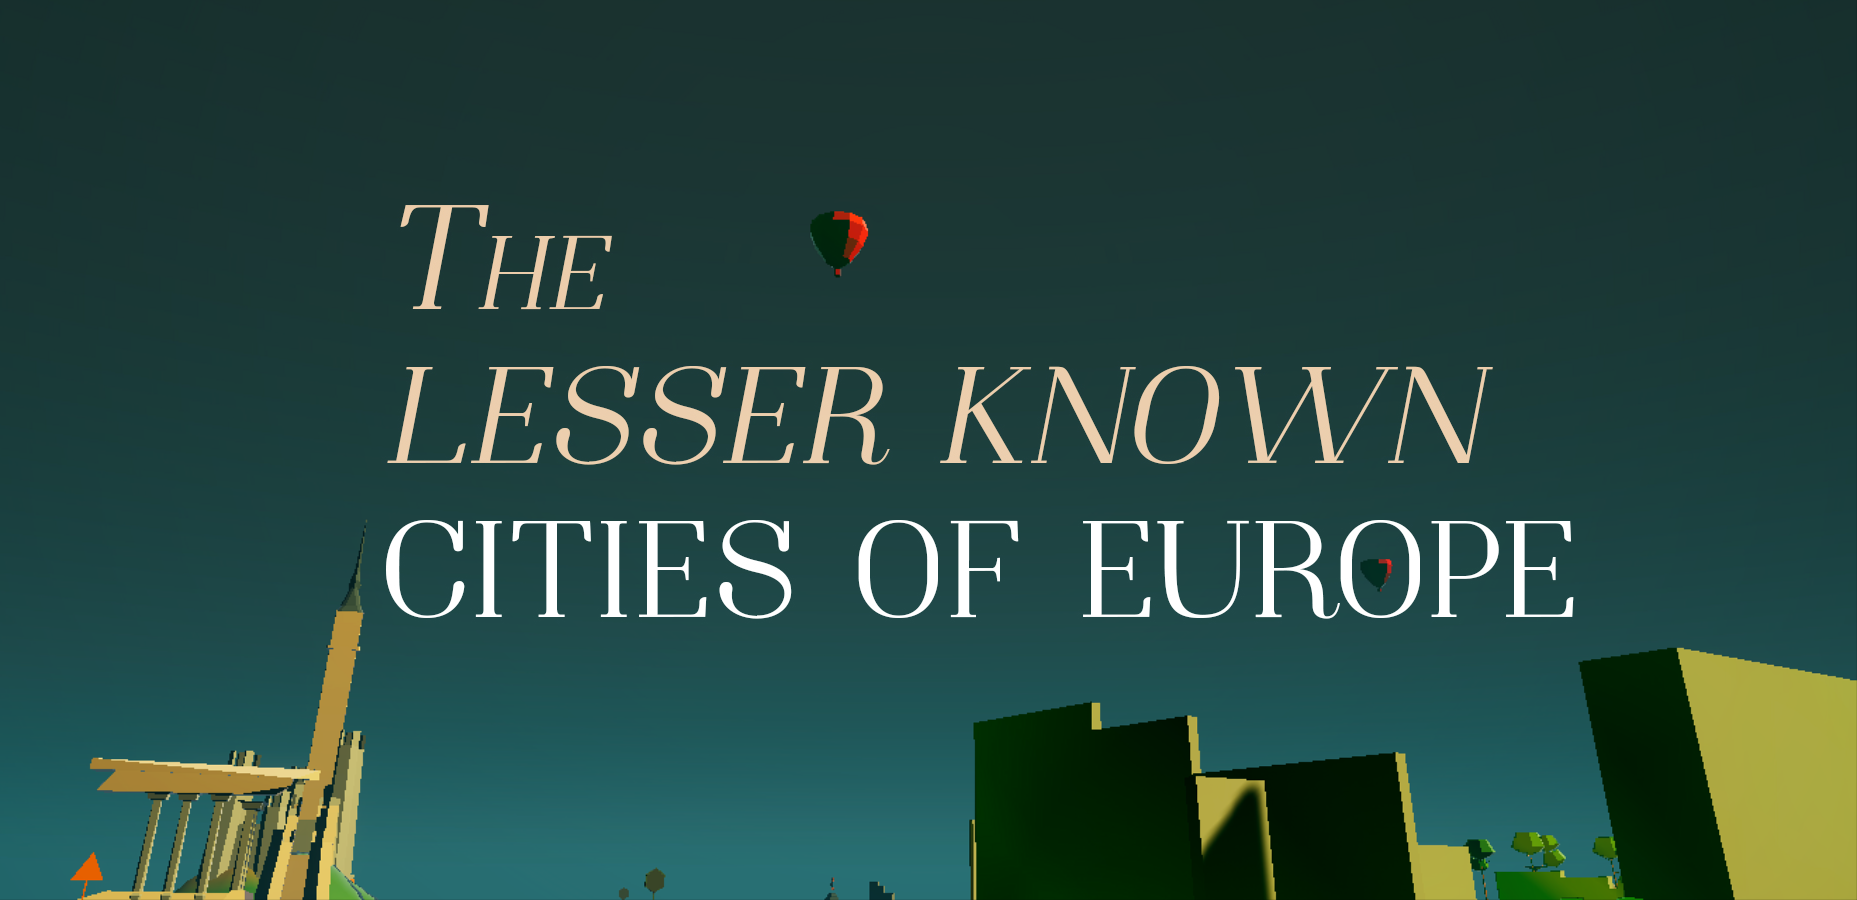 The Lesser Known Cities of Europe